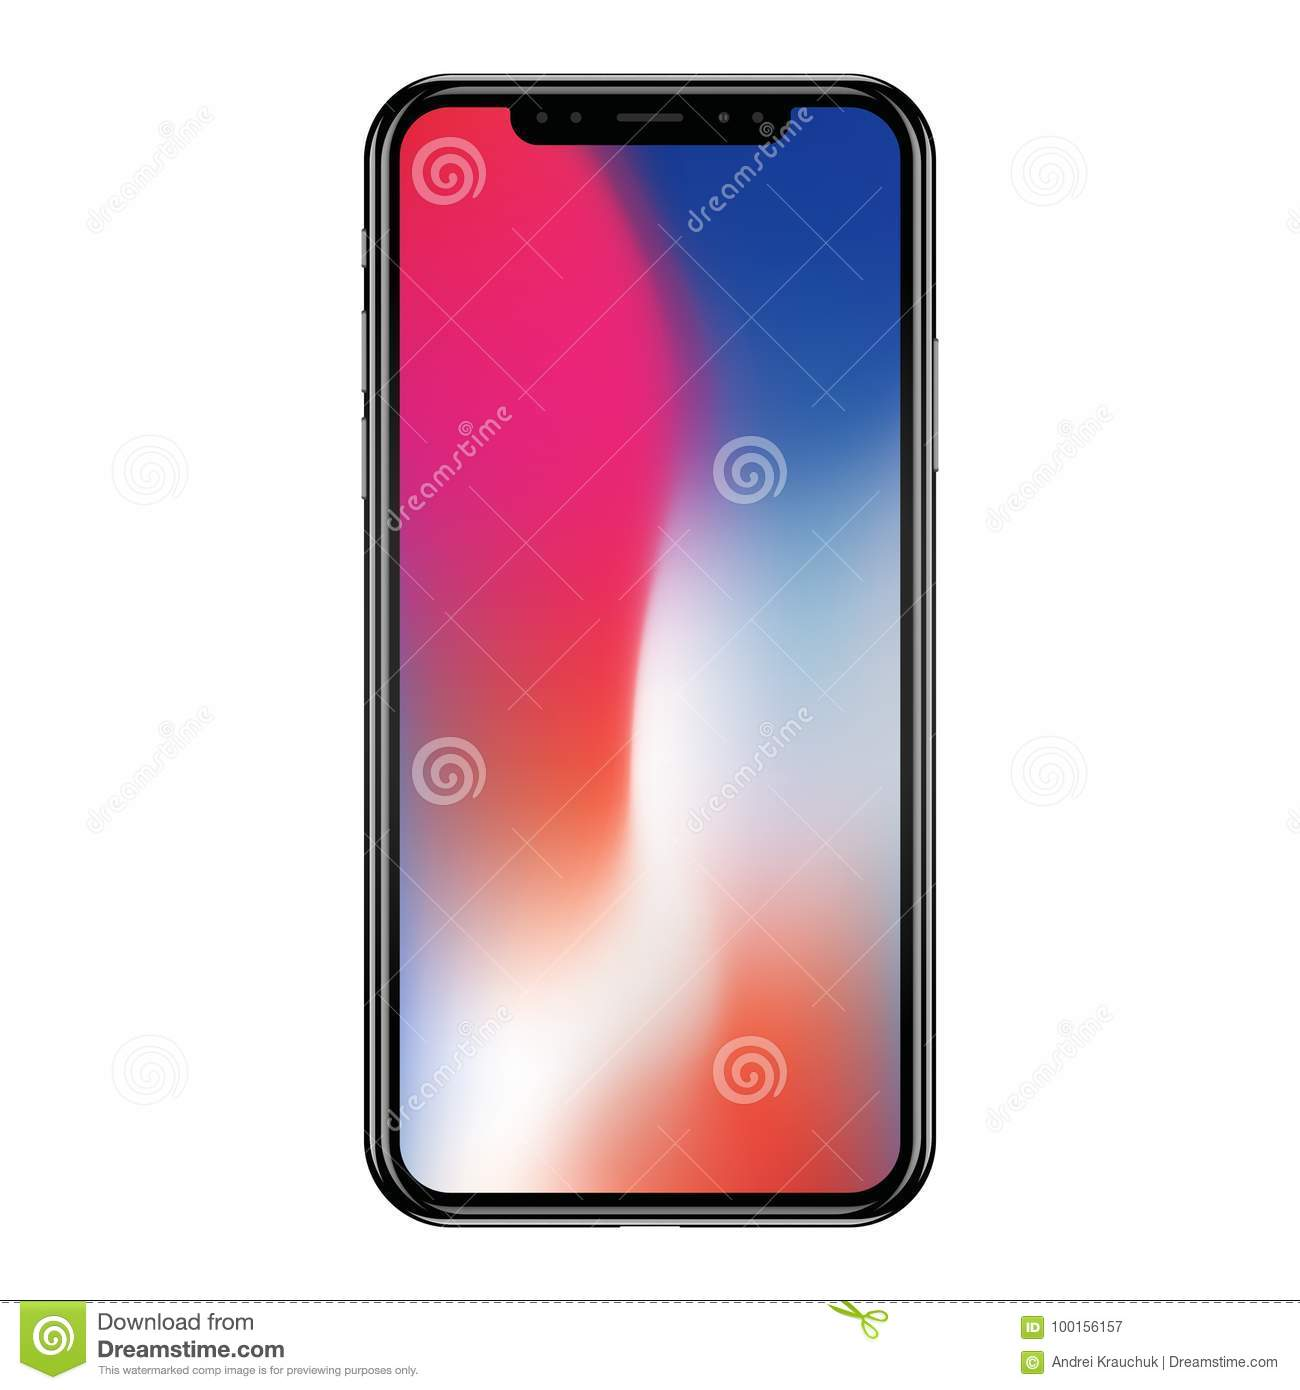 Apple IPhone X Isolated On White Background  Realistic Vector     Toronto  Canada   September  18  2017  front view of black Apple iPhone X  isolated on white background  Realistic vector illustration